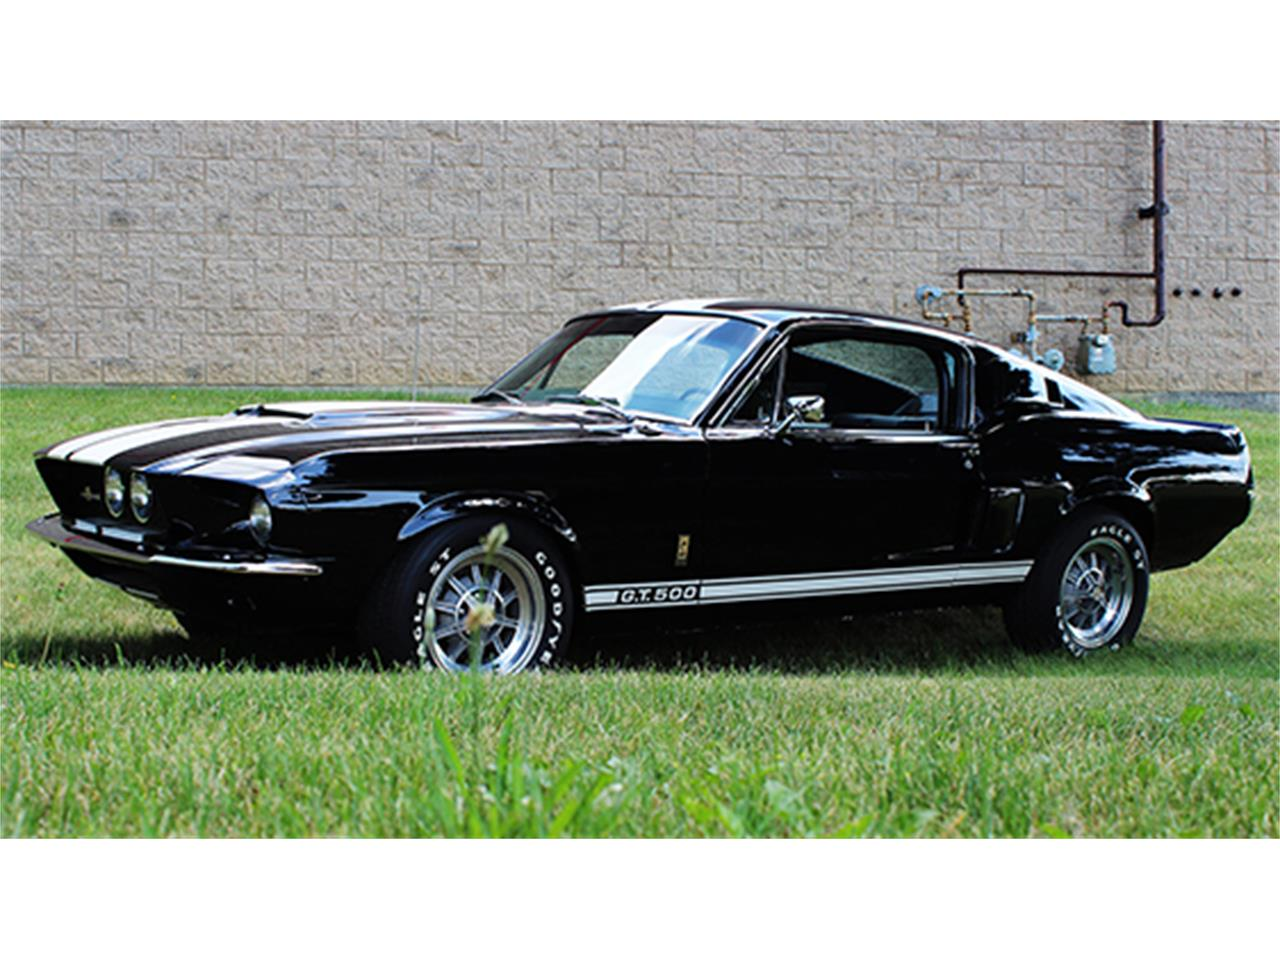 Large picture of 67 mustang fastback s code shelby tribute j0bd